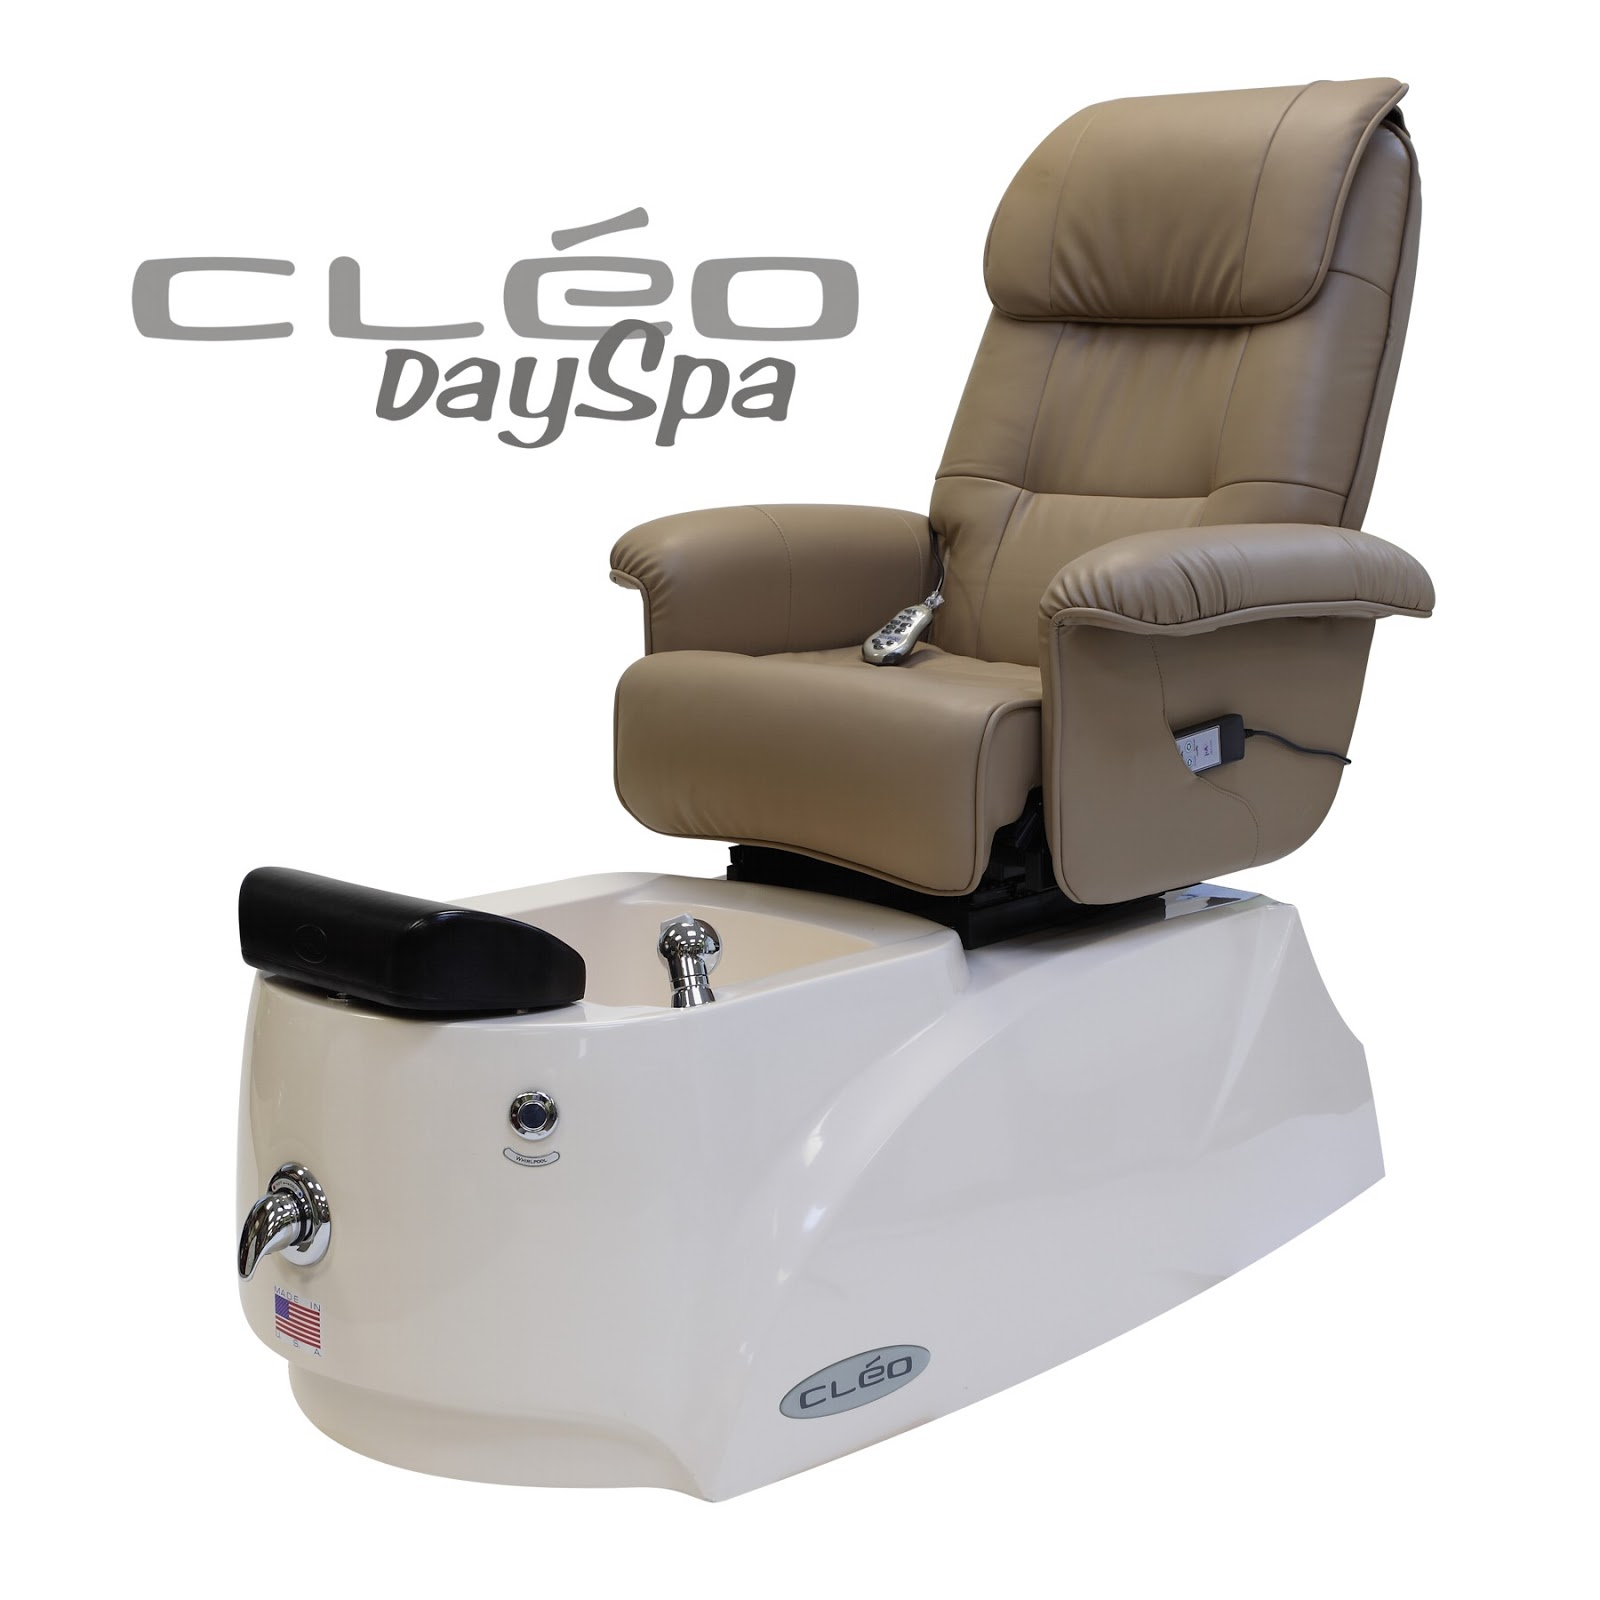 pedicure chairs used cast iron table and nz spa chair salon furniture